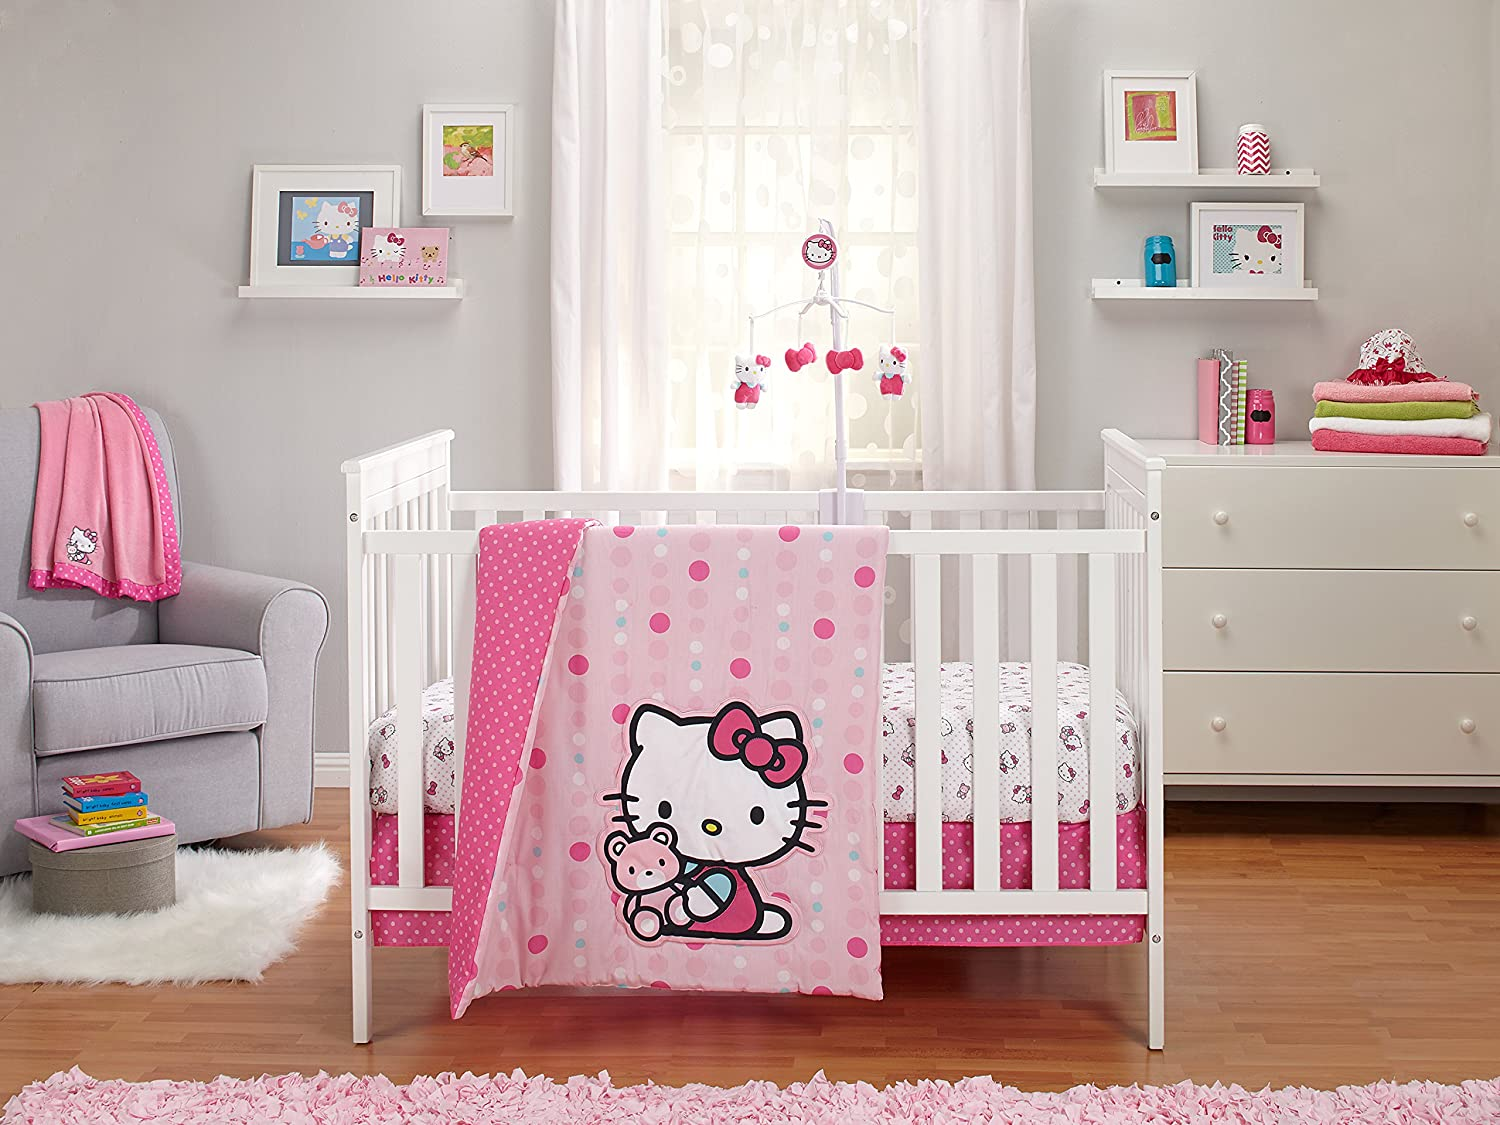 Hello kitty baby room - Amazon Com Sanrio Hello Kitty Cute As A Button 3 Piece Crib Bedding Set Pink White Baby